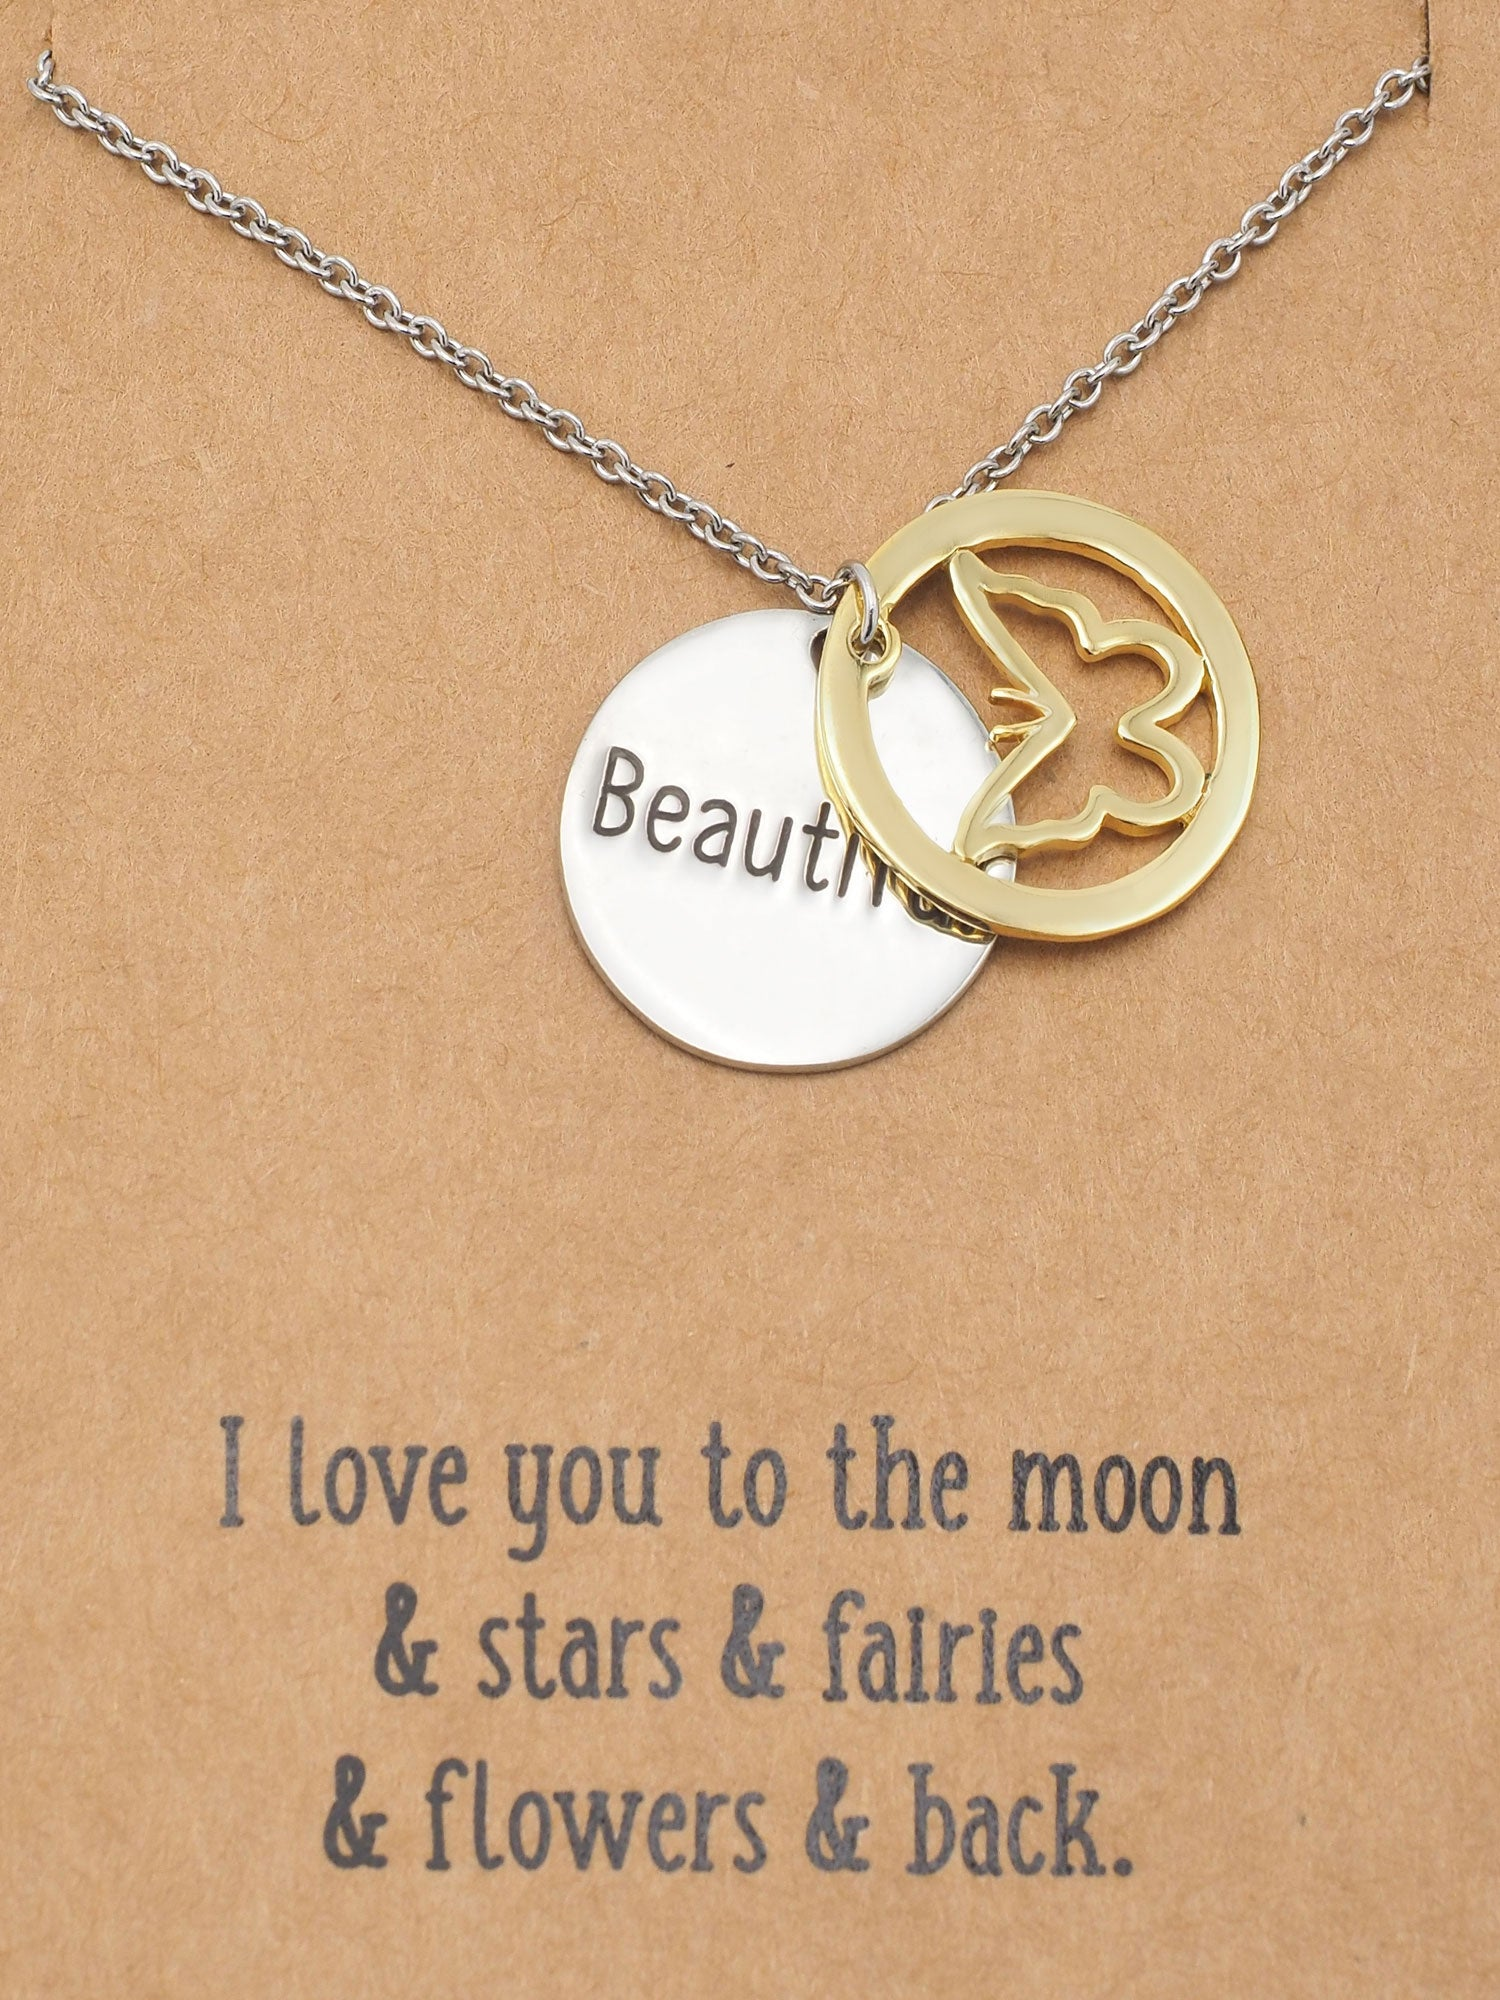 CS-DB Inspiring Message Believe Yourself Silver Necklaces Pendants Top Stylish